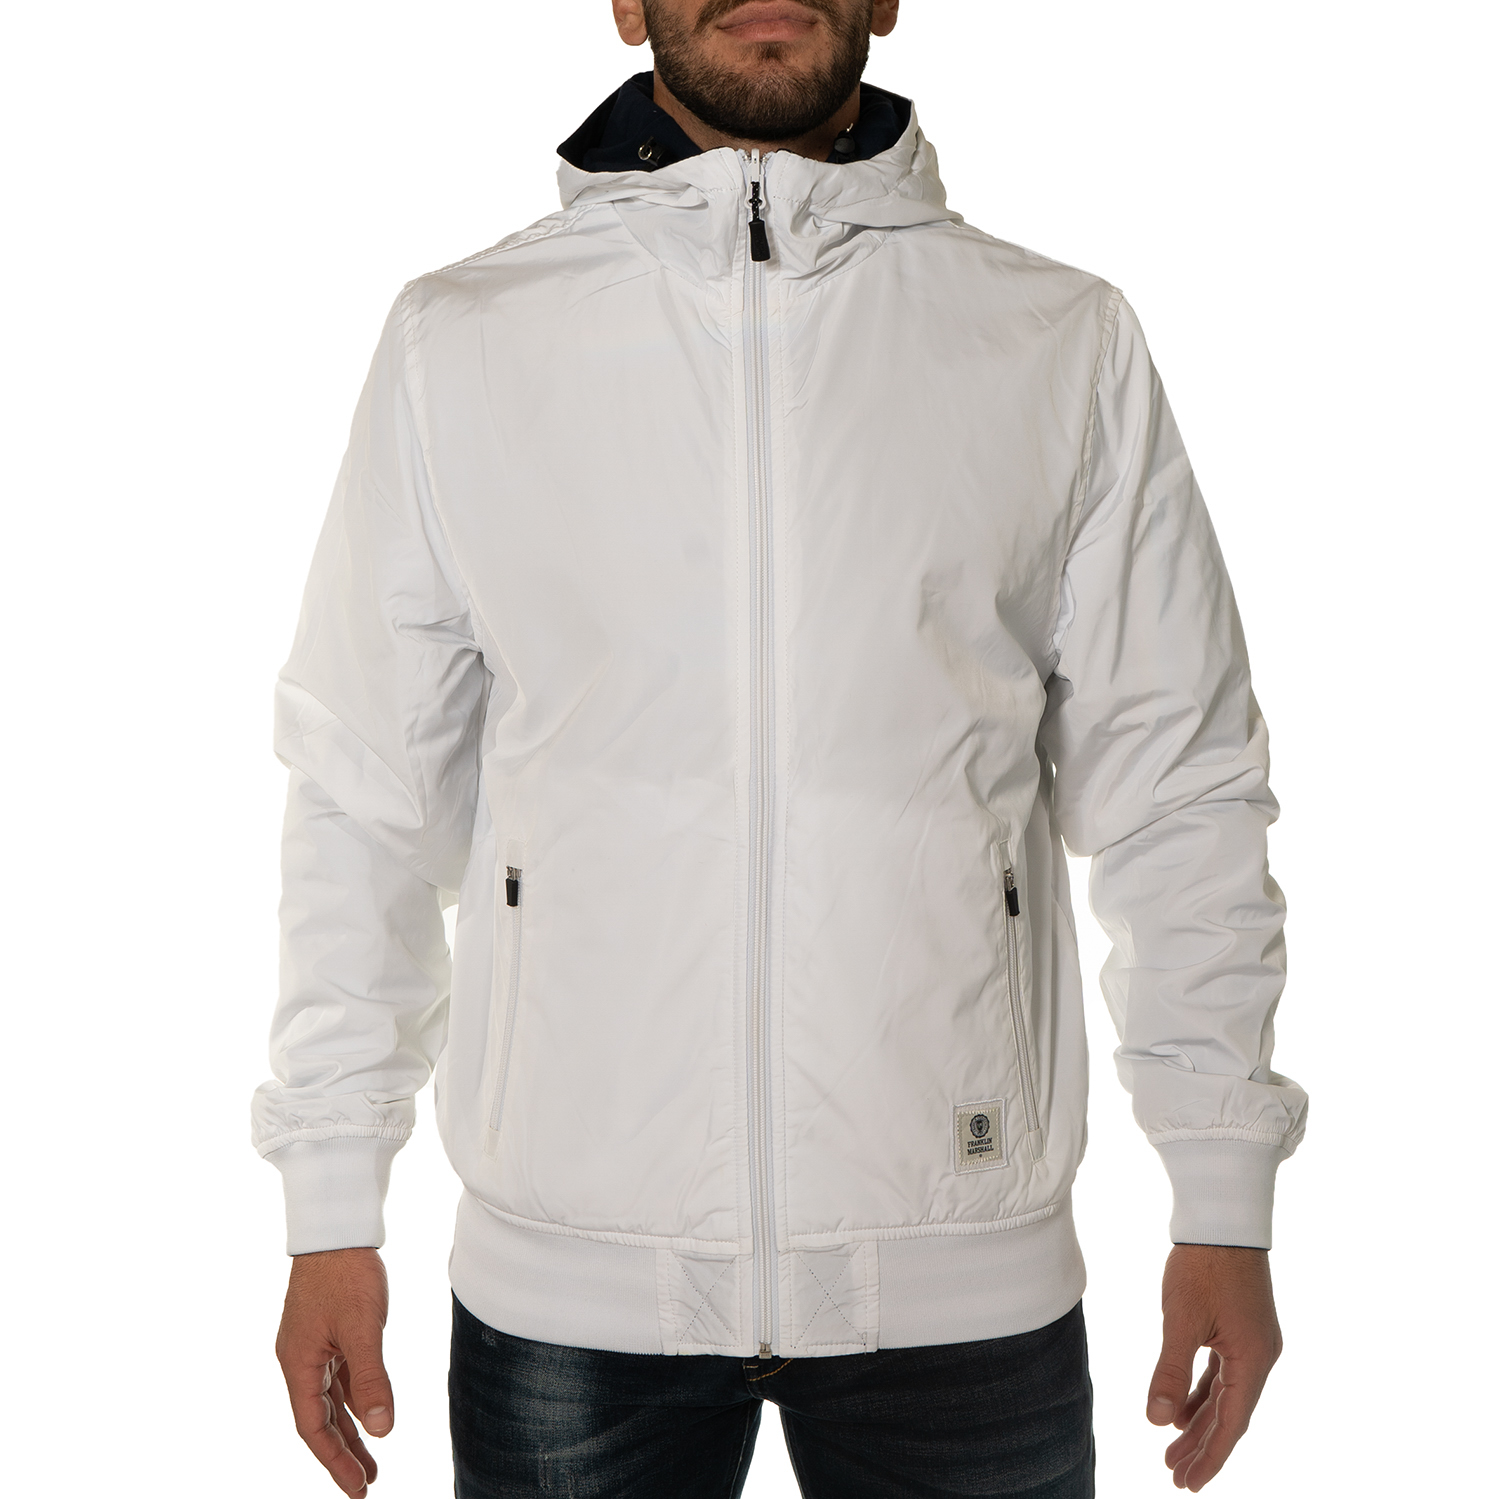 Franklin and Marshall Zipped Hoodie M ( JKMF408ANW18-0167 ) ρούχα    άνδρας    sweaters   hoodies   ζακέτες